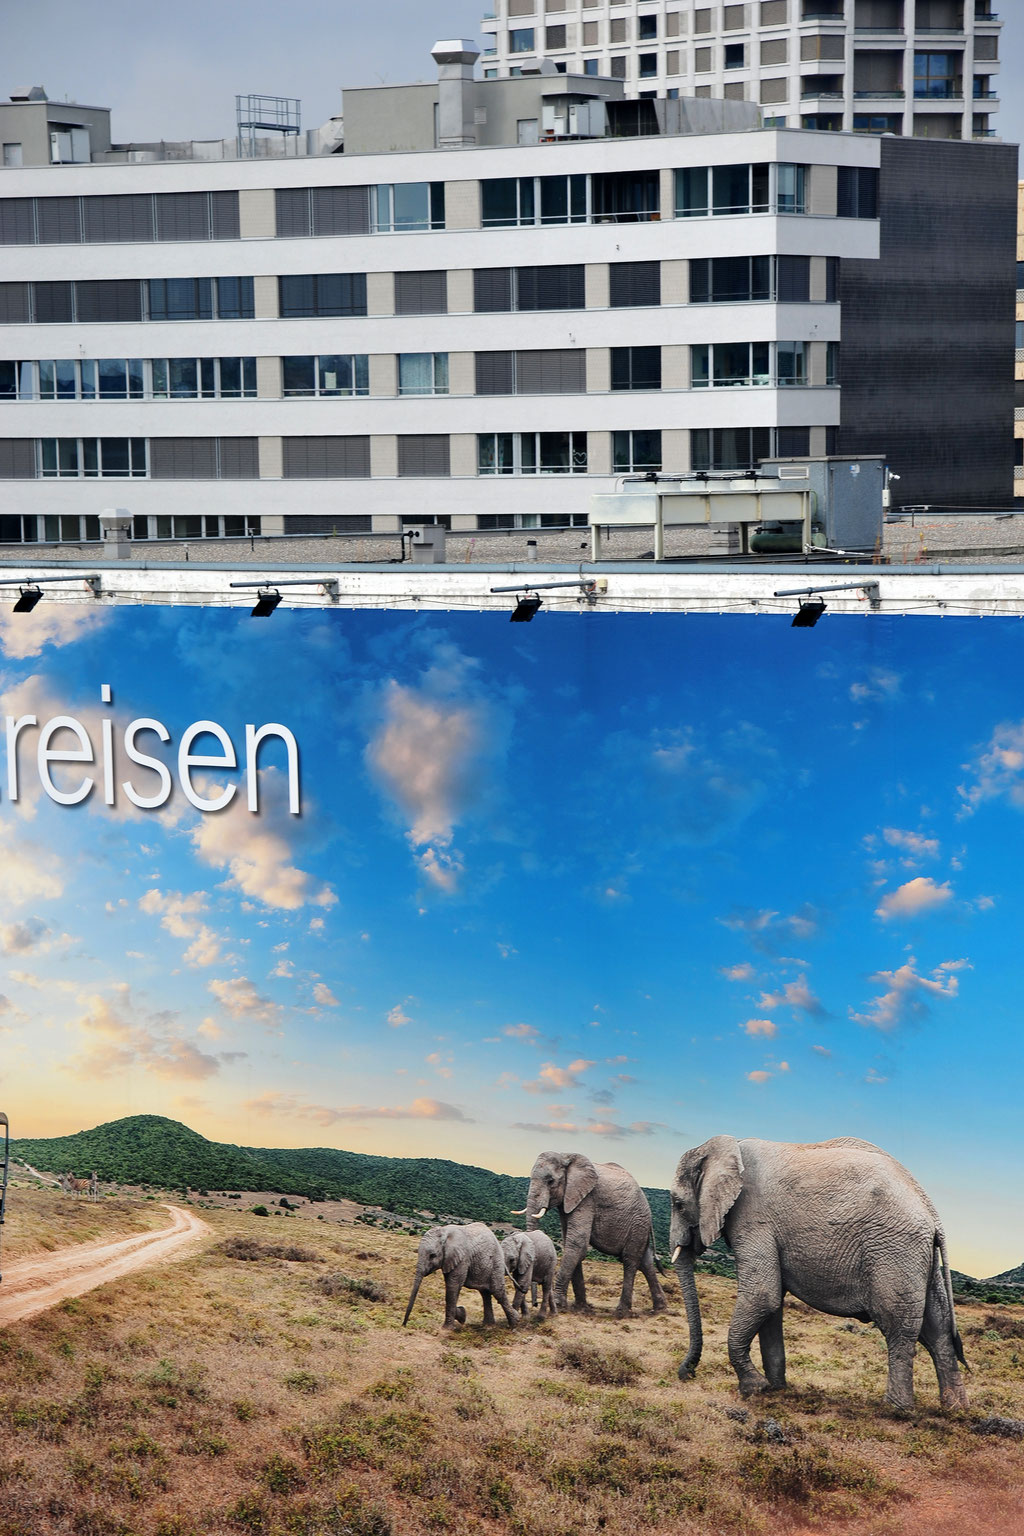 Foto: Andreas Ender, photo-art+painting - Zürich - Sonderedition of 5 | 40x60cm - je 377,00€